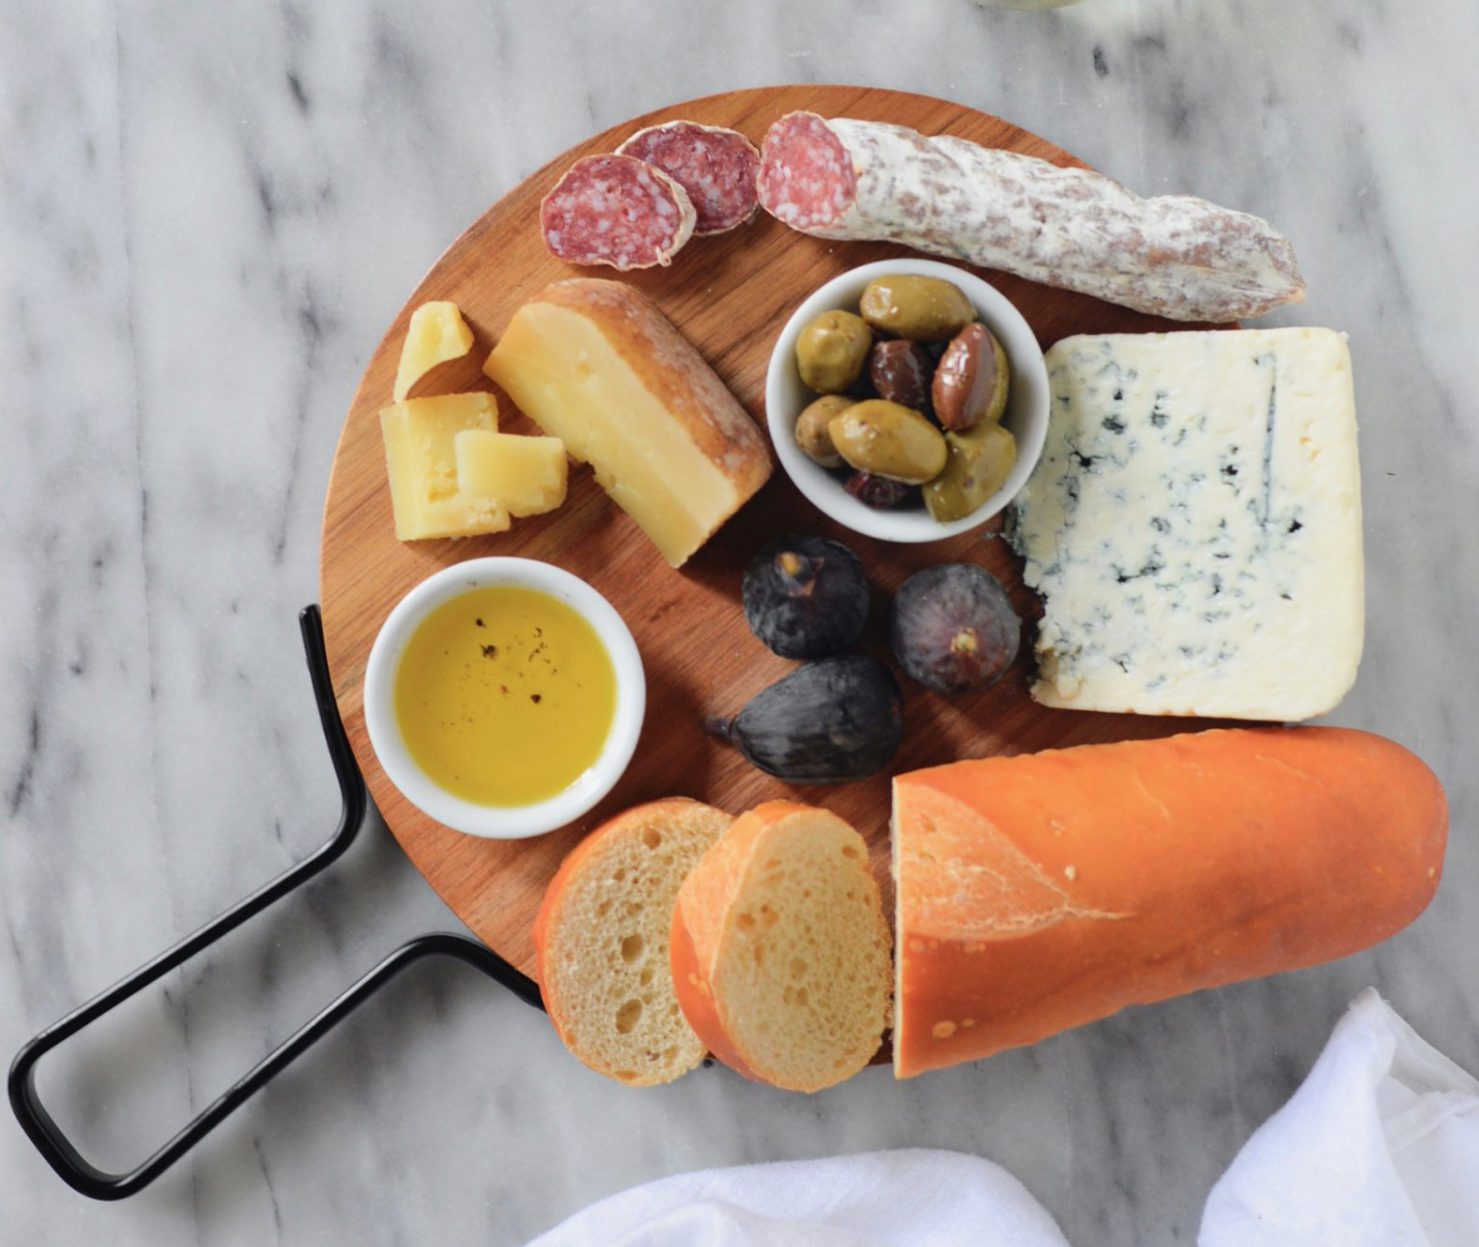 Round board of cheese, meat, olives and bread